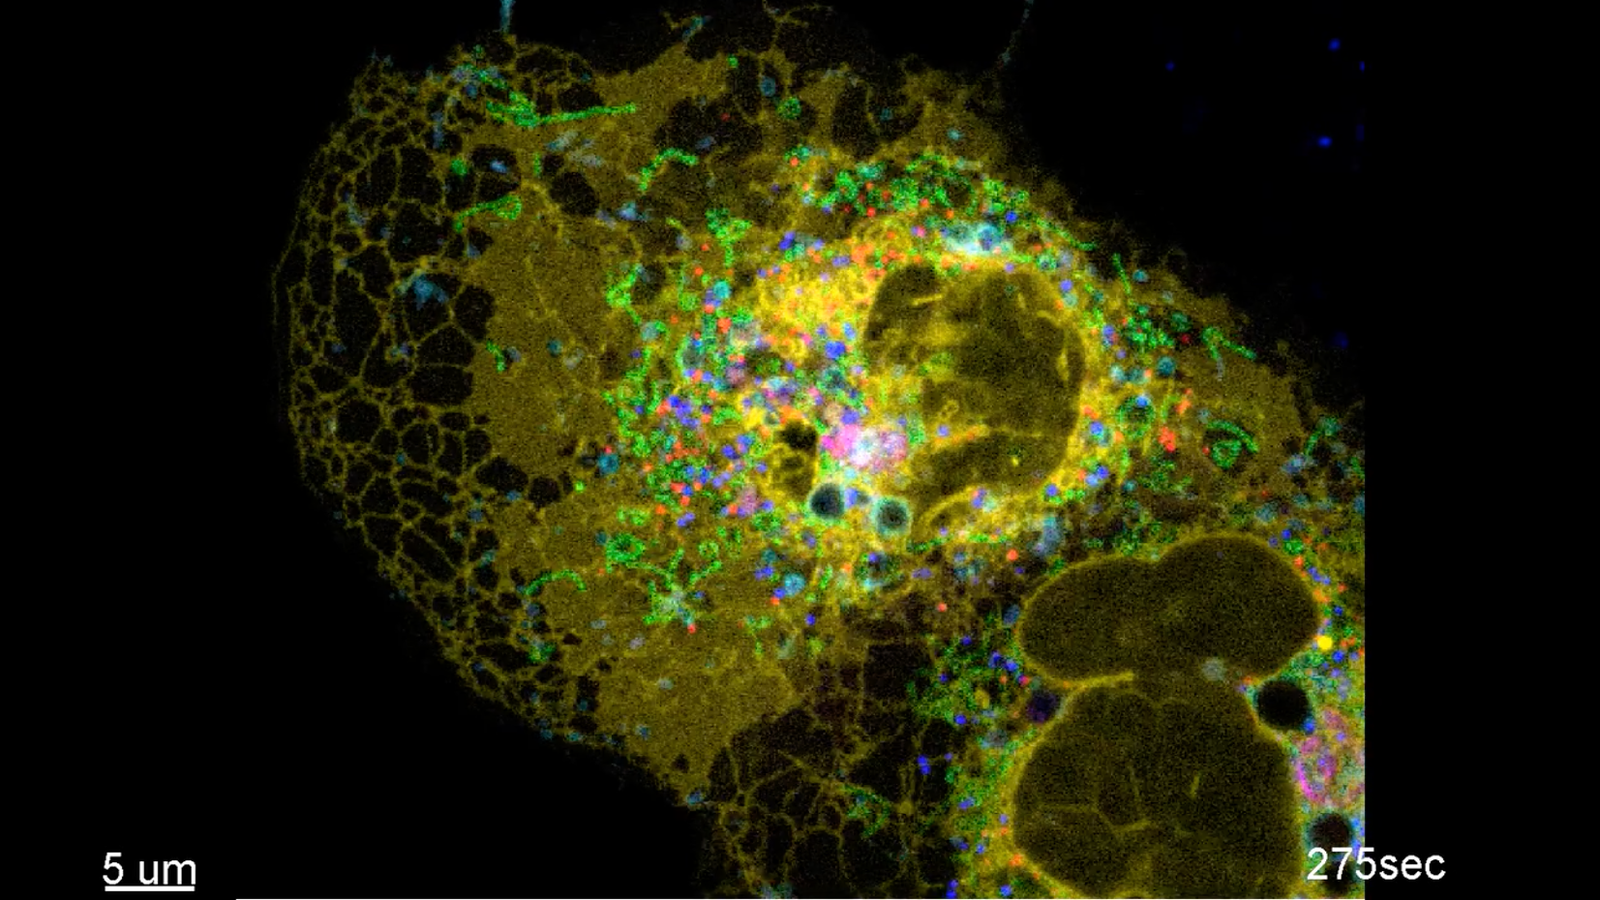 This Is the Most Complex Video of a Real Cell Ever Made